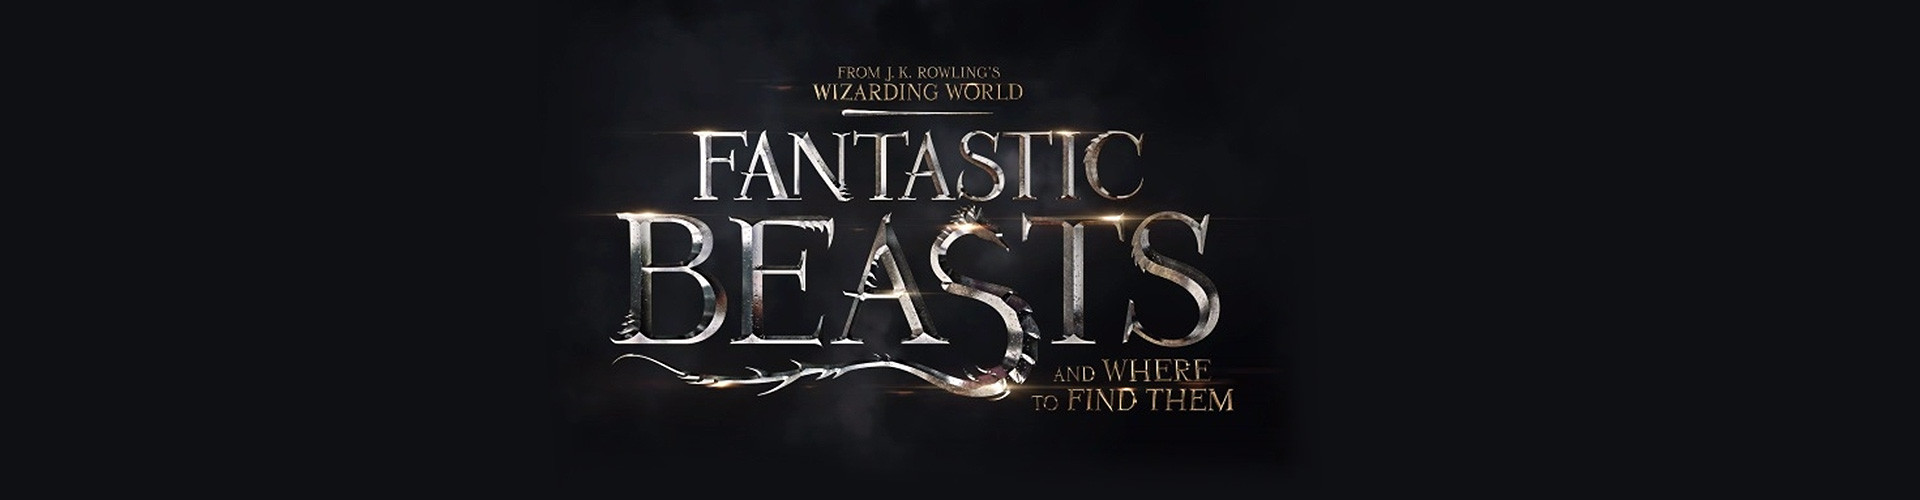 fantastic-beasts-2-header.jpg